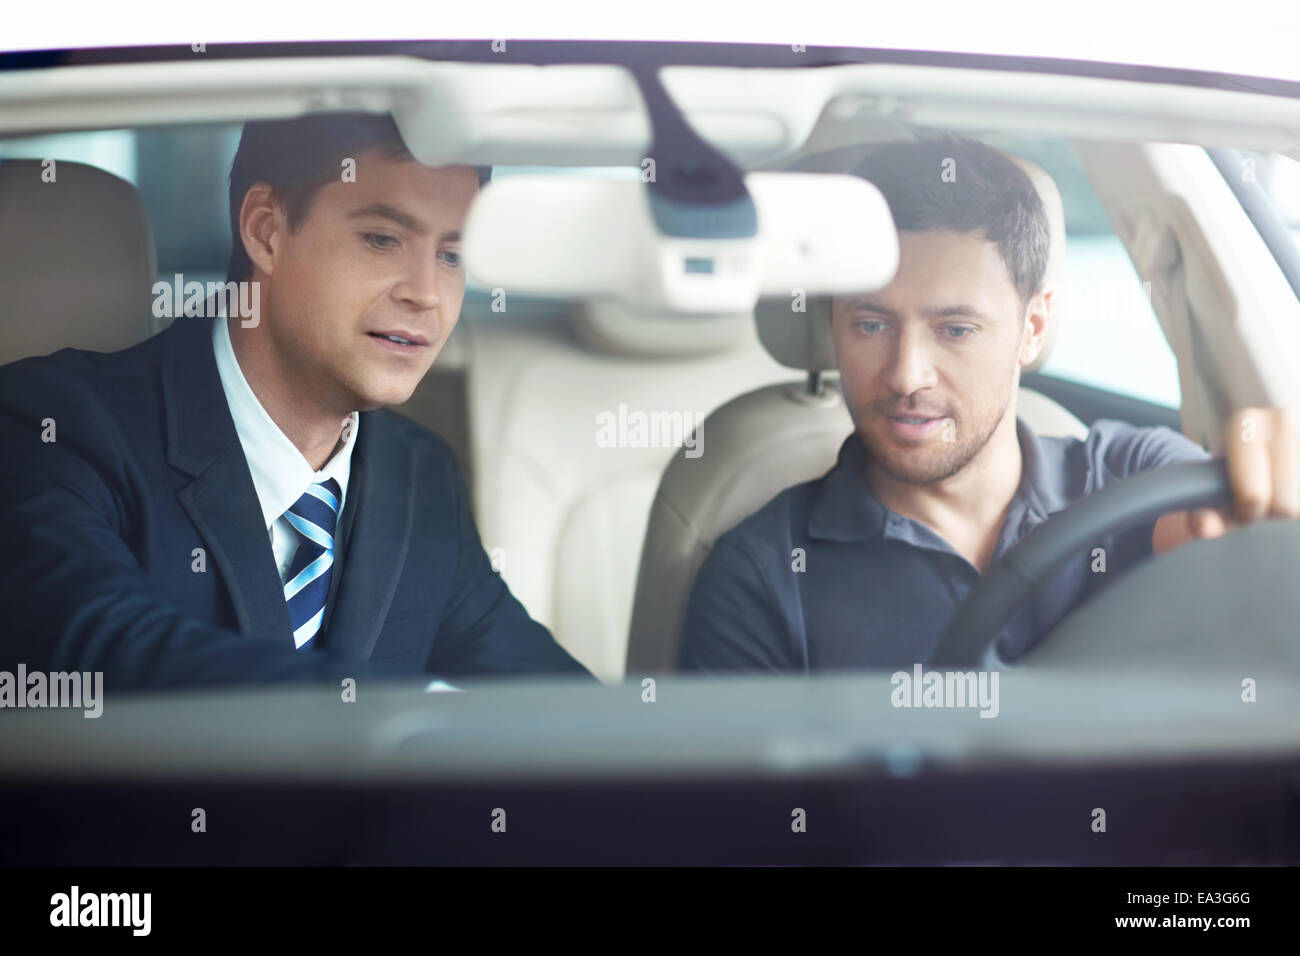 Sale of automobiles - Stock Image